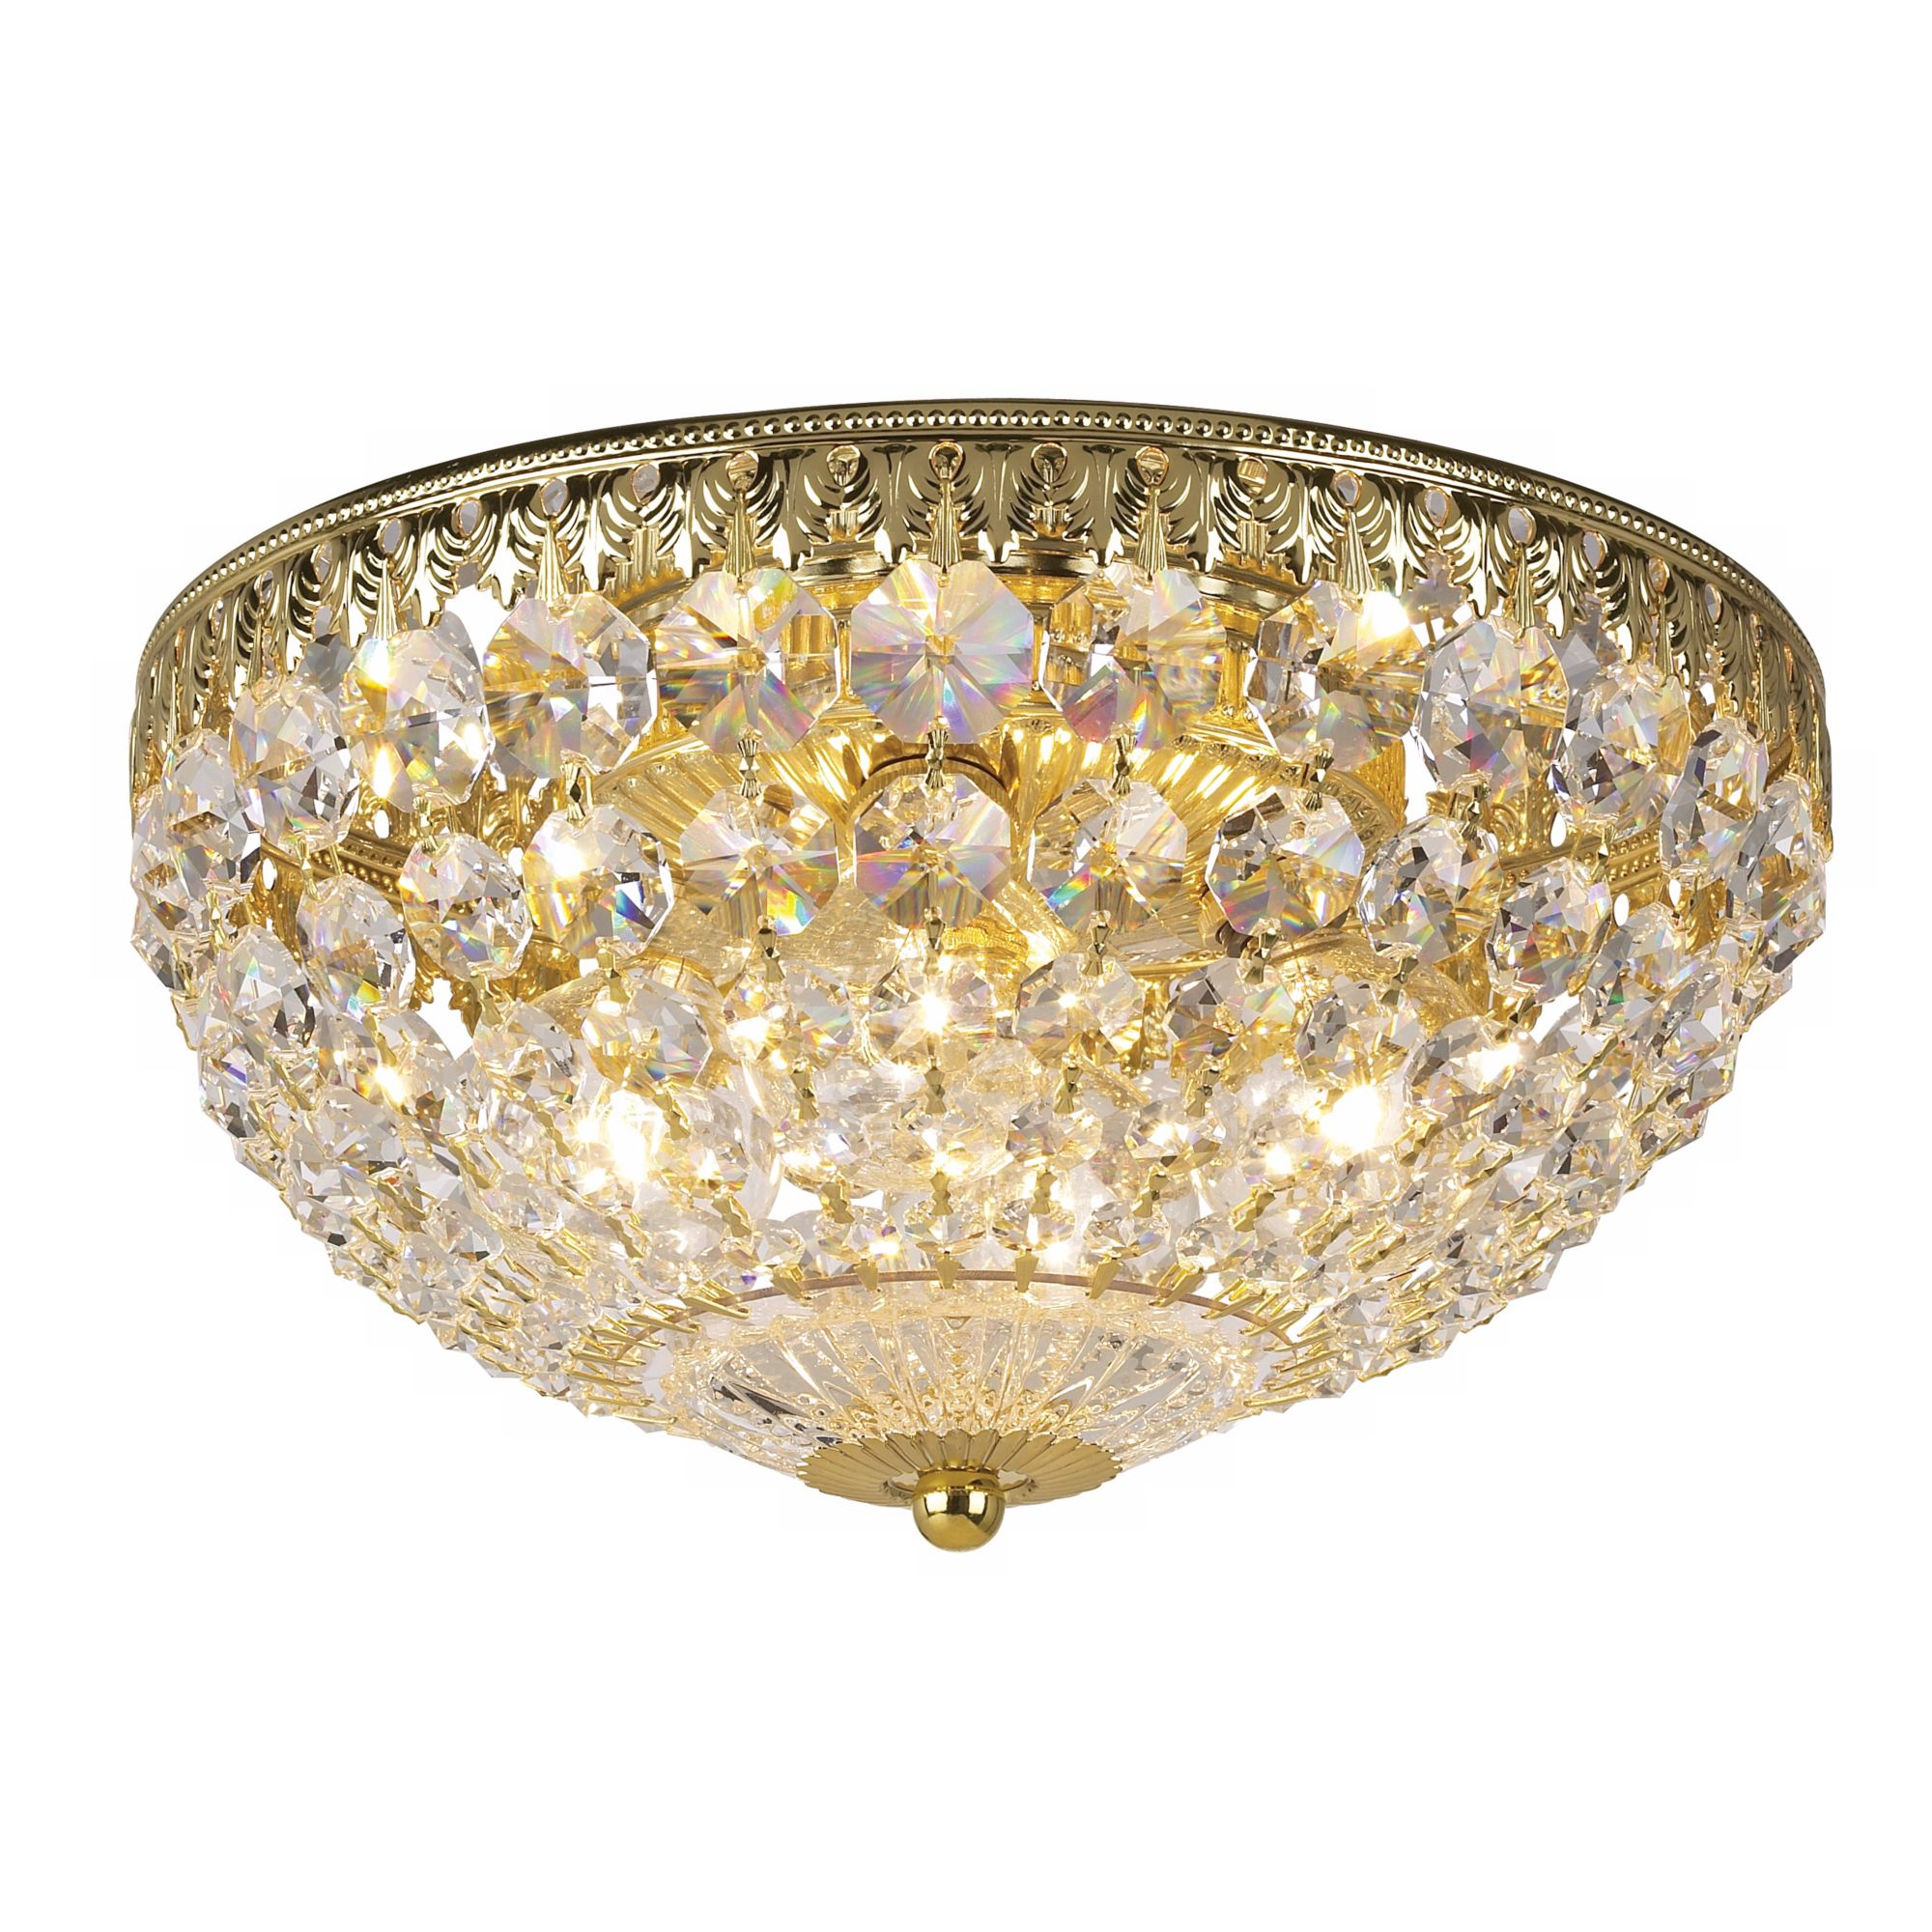 "Schonbek 10"" Wide Gold Crystal Flushmount by Schonbek"